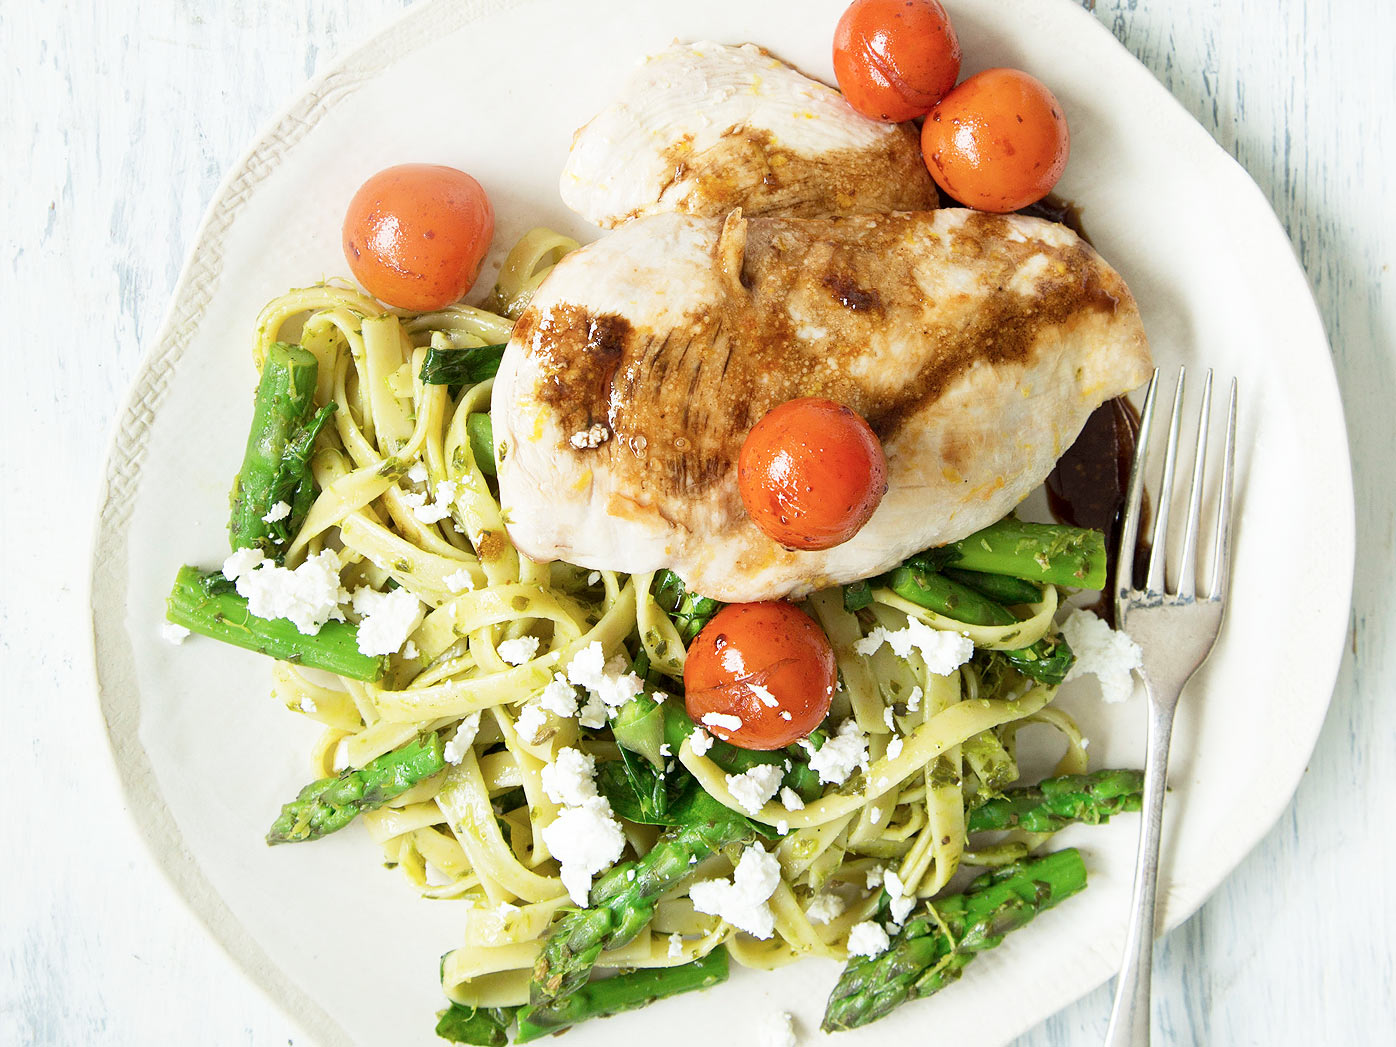 Nadia Lim's chicken with salsa verde and fettuccine